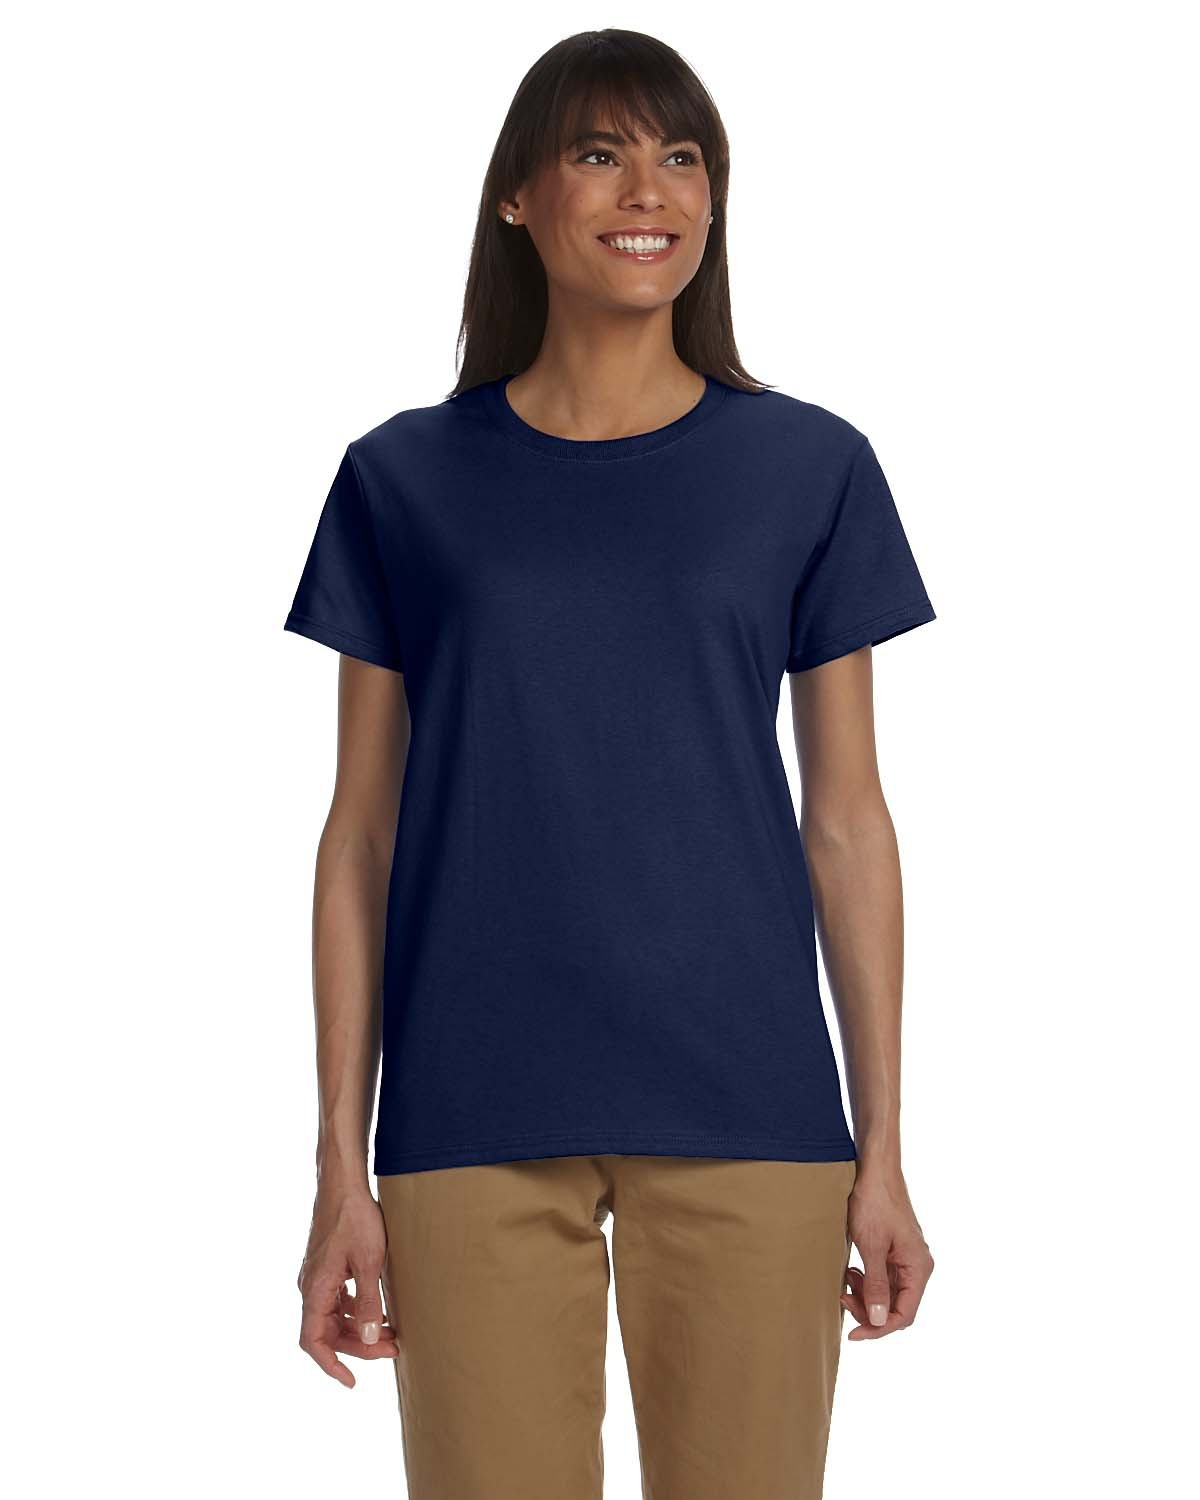 Blank women 39 s navy t shirt you customize it for Womens black tee shirt